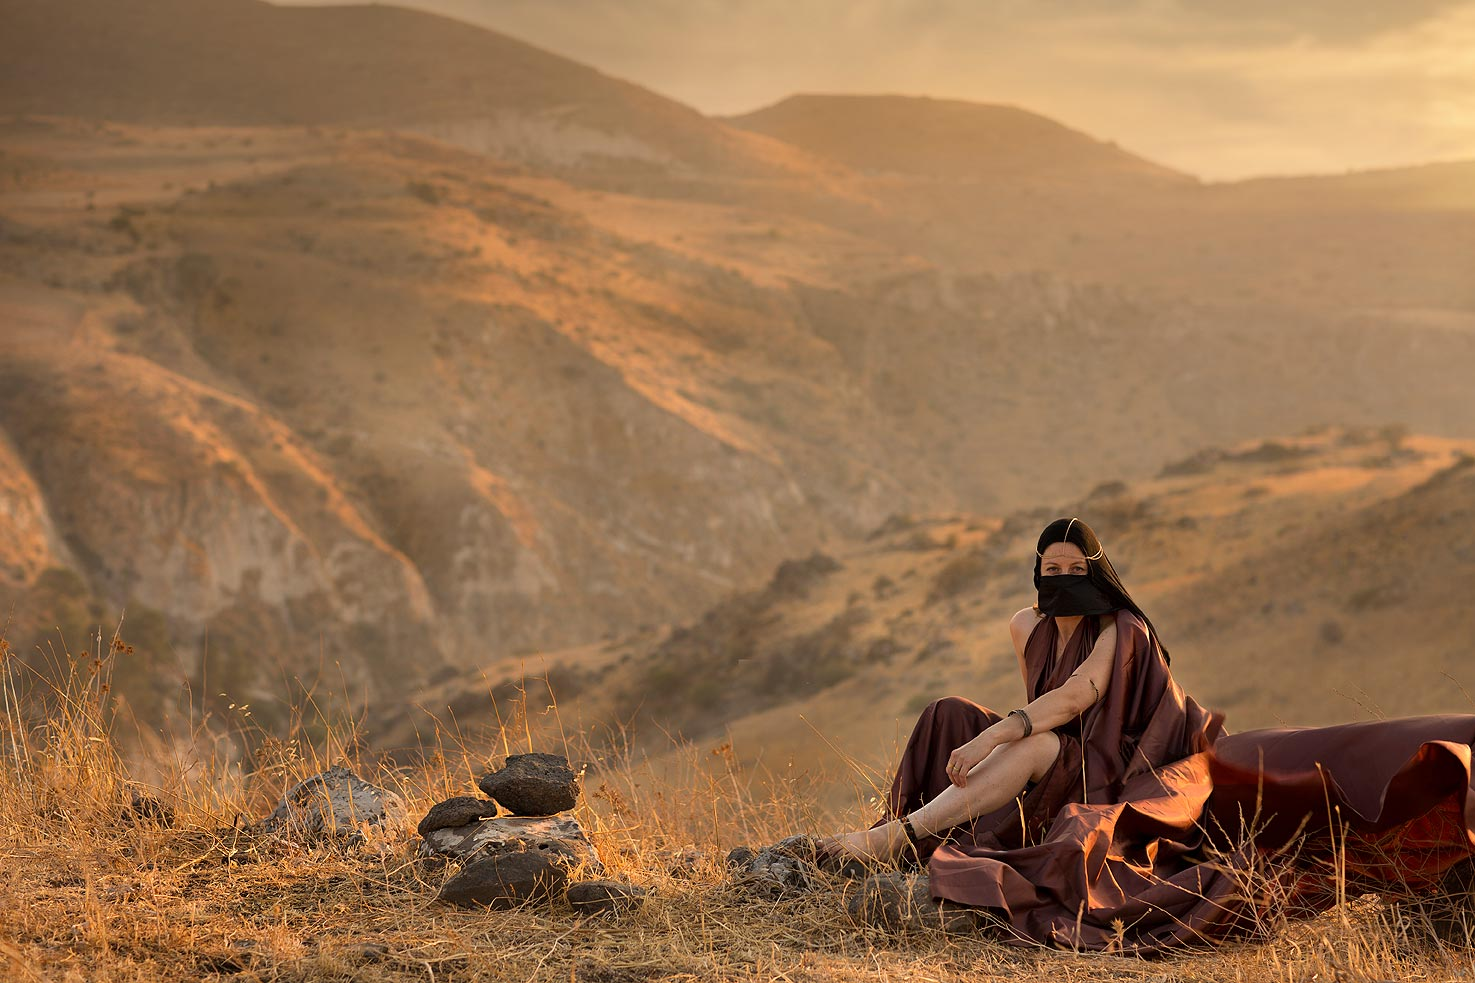 """Tamar, Judah's daughter-in-law, """"And she put off from her the garments of her widowhood, and covered herself with her veil, and wrapped herself, and sat in the entrance of Enaim, which is by the way to Timnah; .. When Judah saw her, he thought her to be a harlot; for she had covered her face."""" Genesis 38 15-15"""